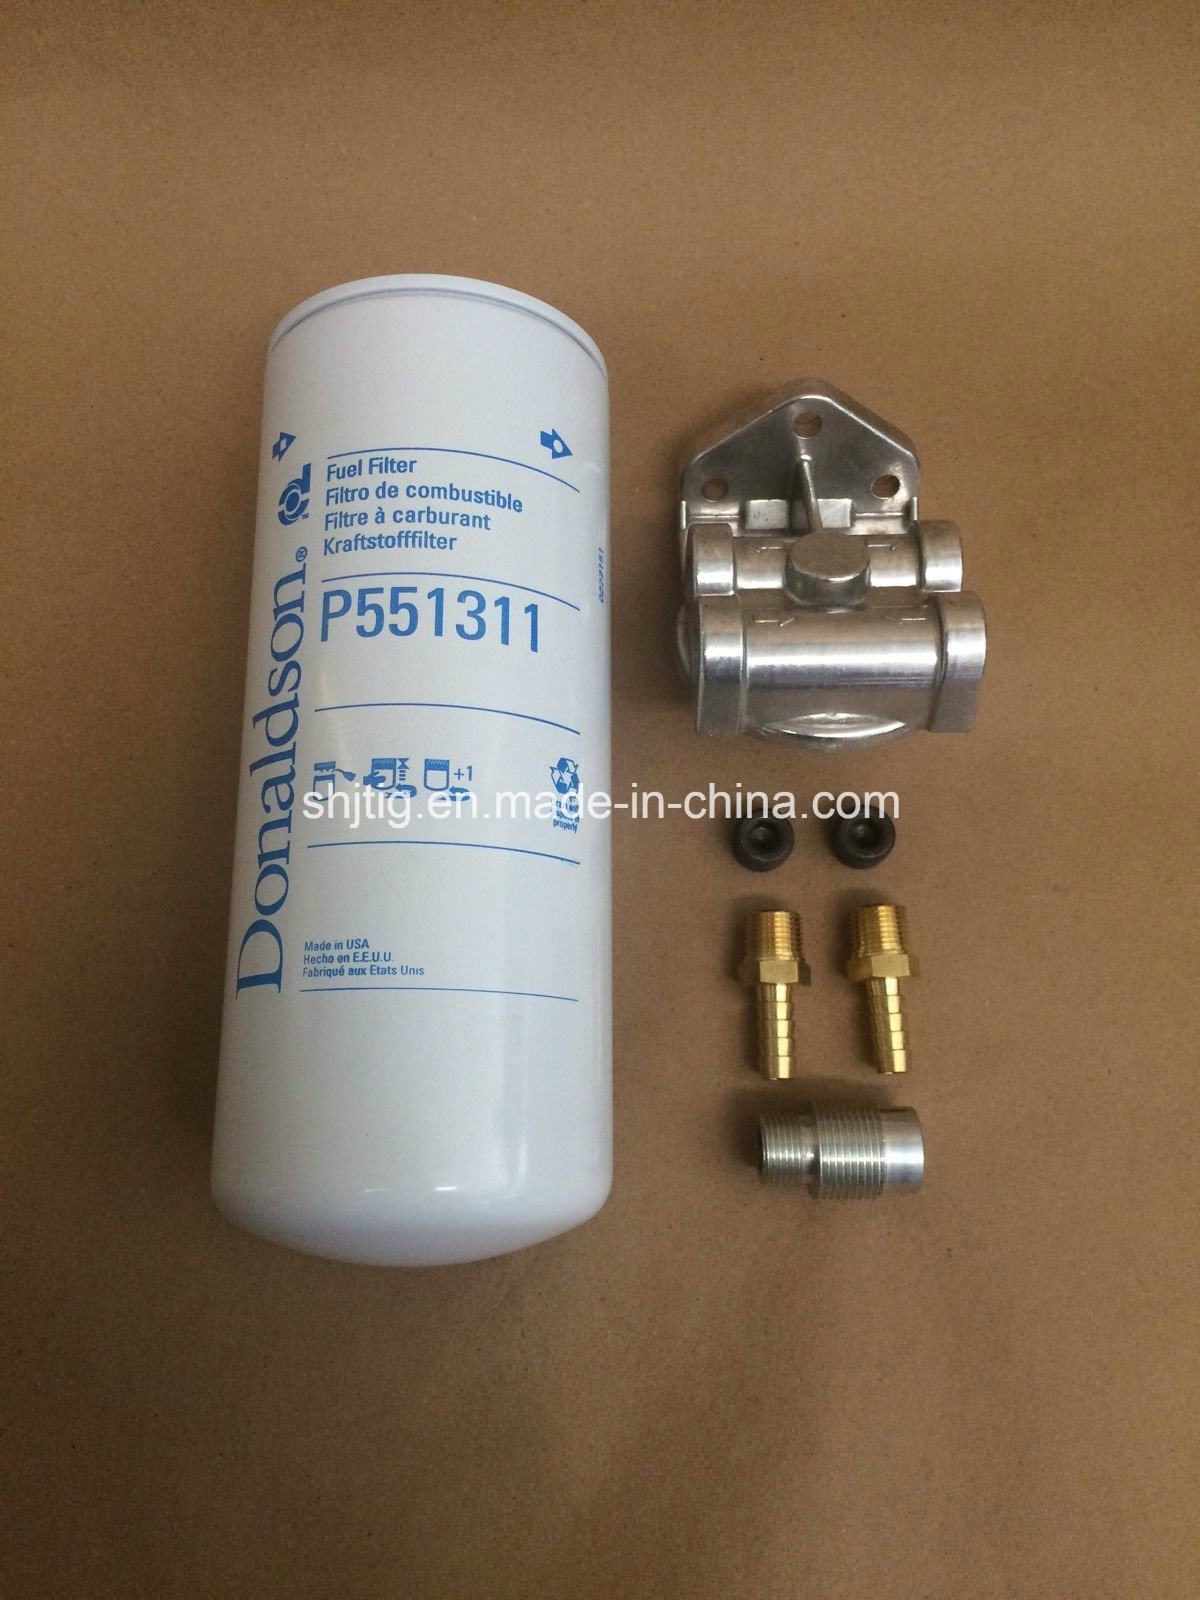 P551311 for Cummins Duramax Powerstroke Cat Fuel Filter Remote Mount with Filter Fr250491